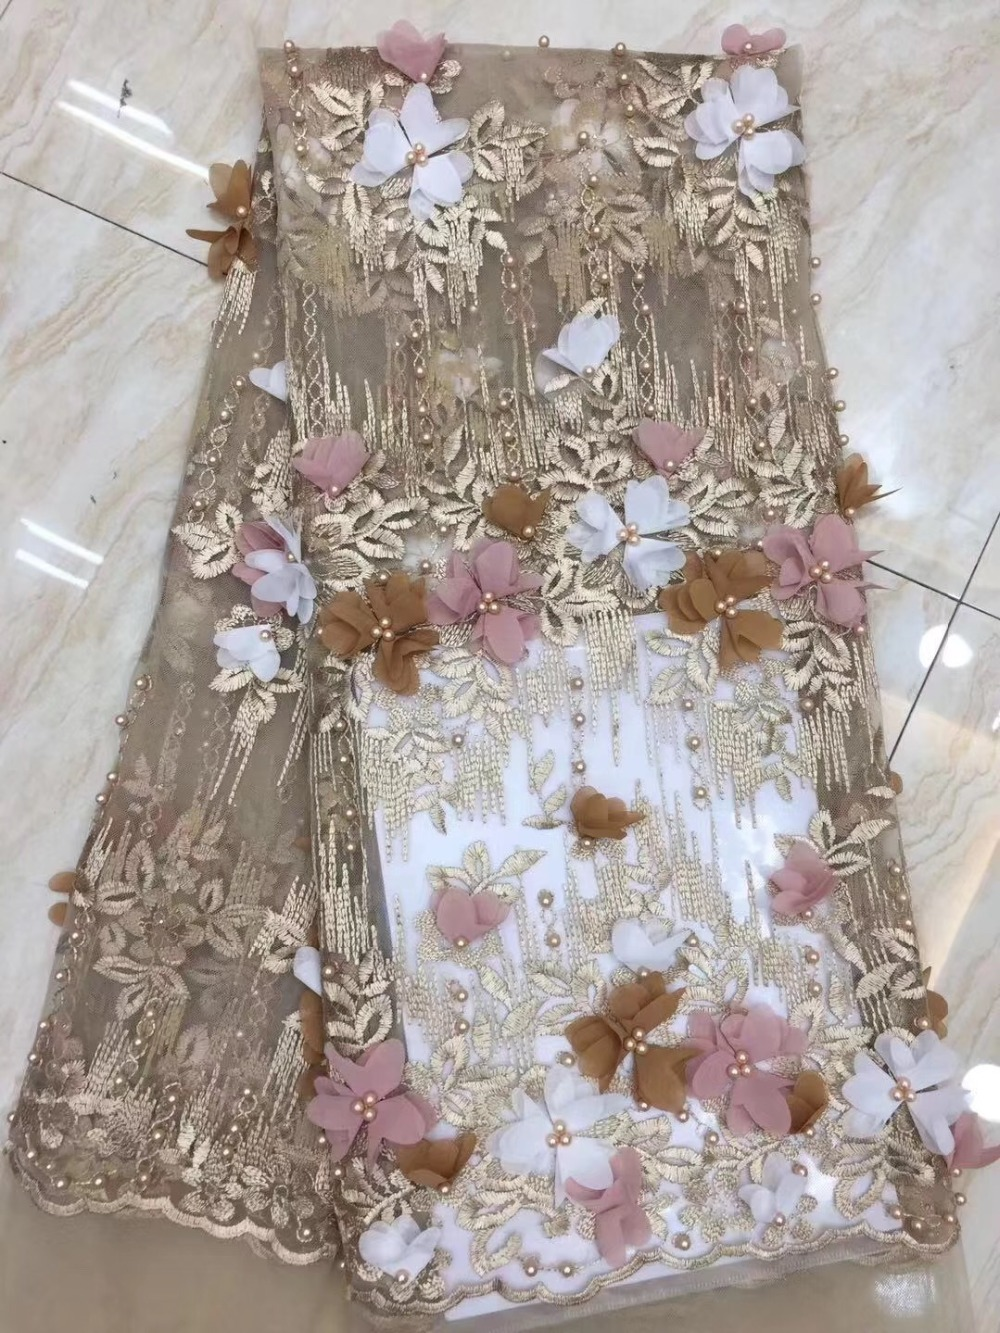 2019 High Quality African Mesh lace fabric With pearl Tulle Lace Design Nigerian Lace Fabrics for wedding2019 High Quality African Mesh lace fabric With pearl Tulle Lace Design Nigerian Lace Fabrics for wedding